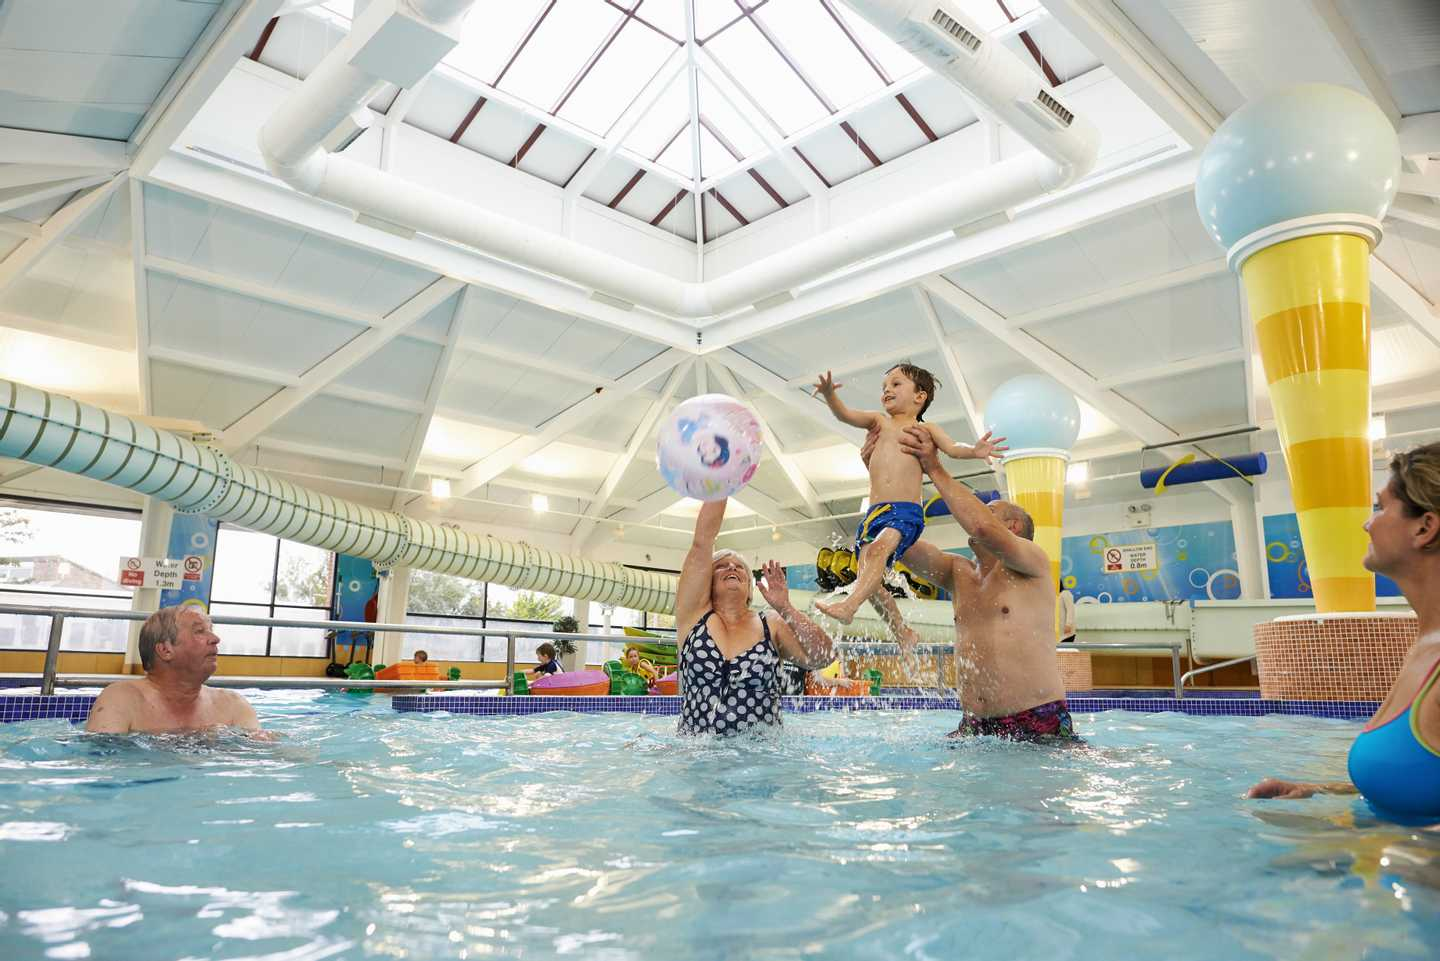 Guests splashing around in the heated indoor pool